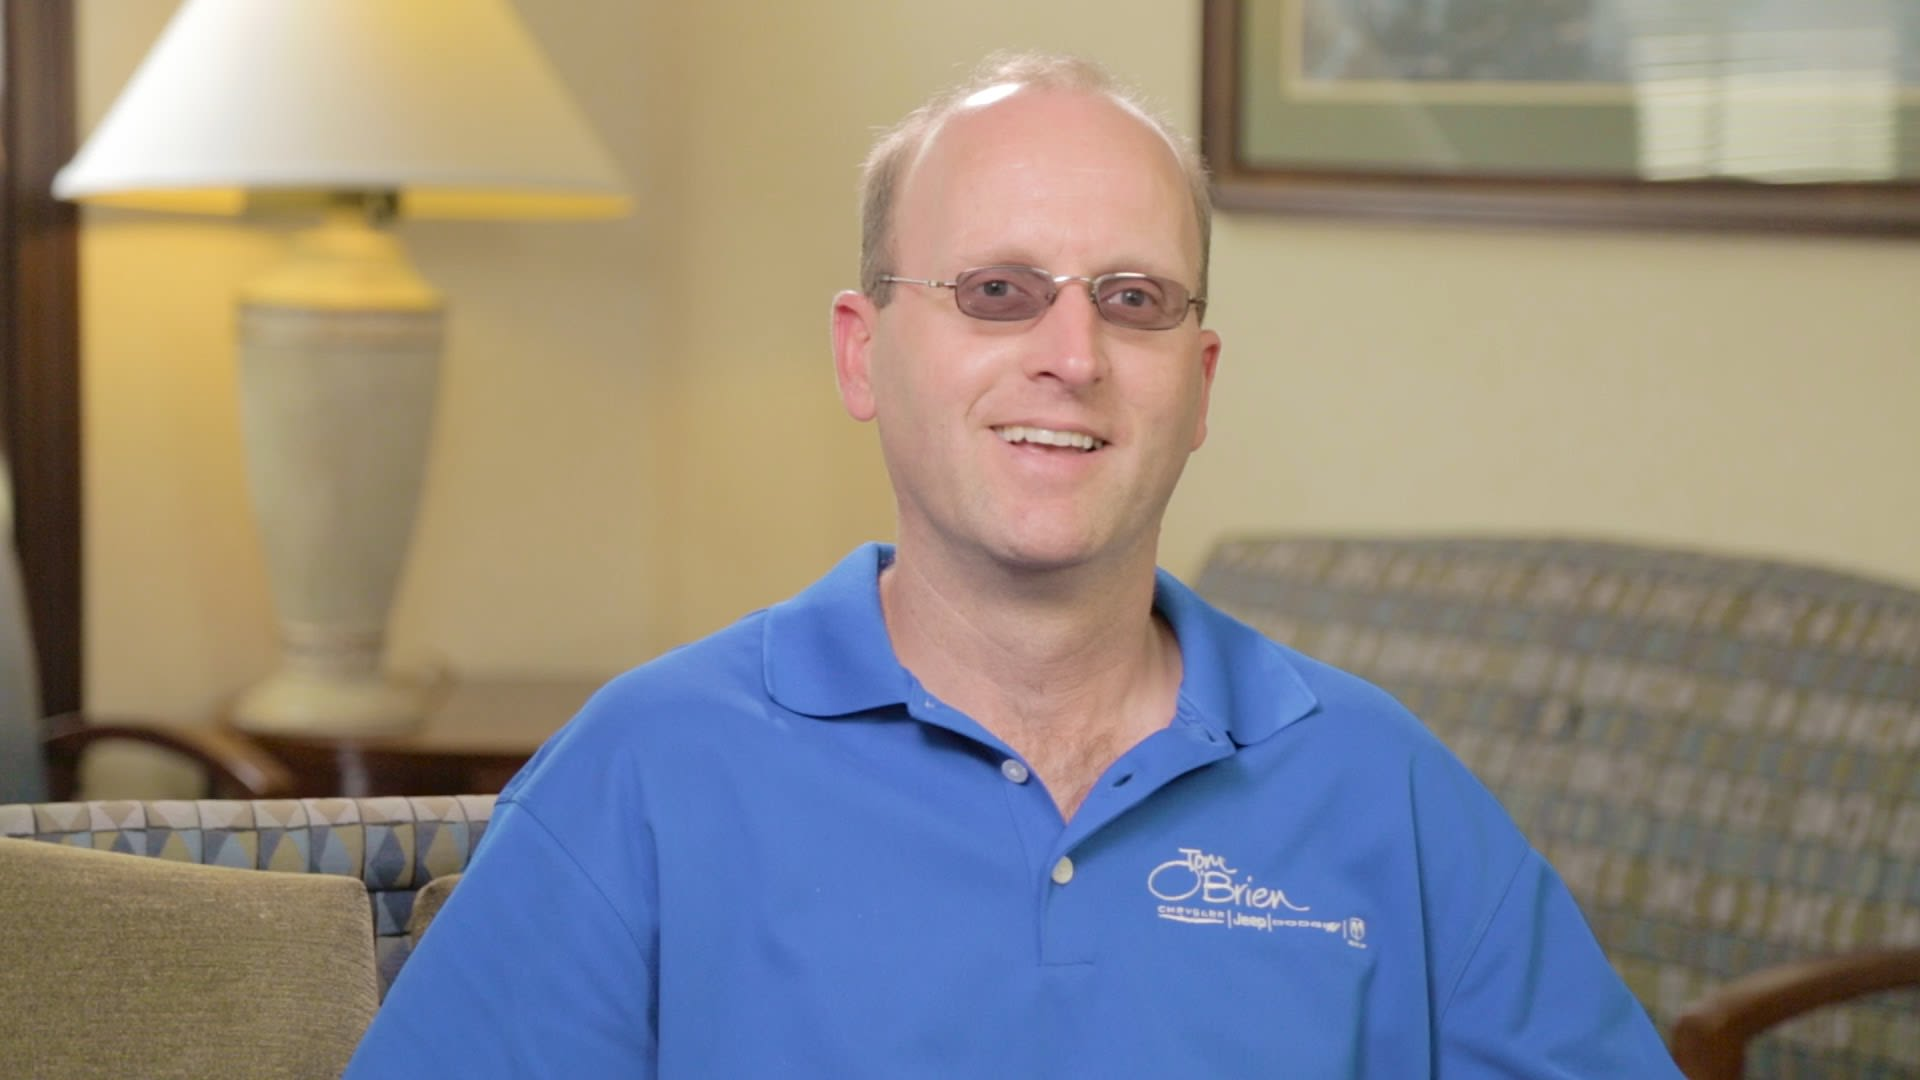 Paul's Dental Implants with Dr. Falender